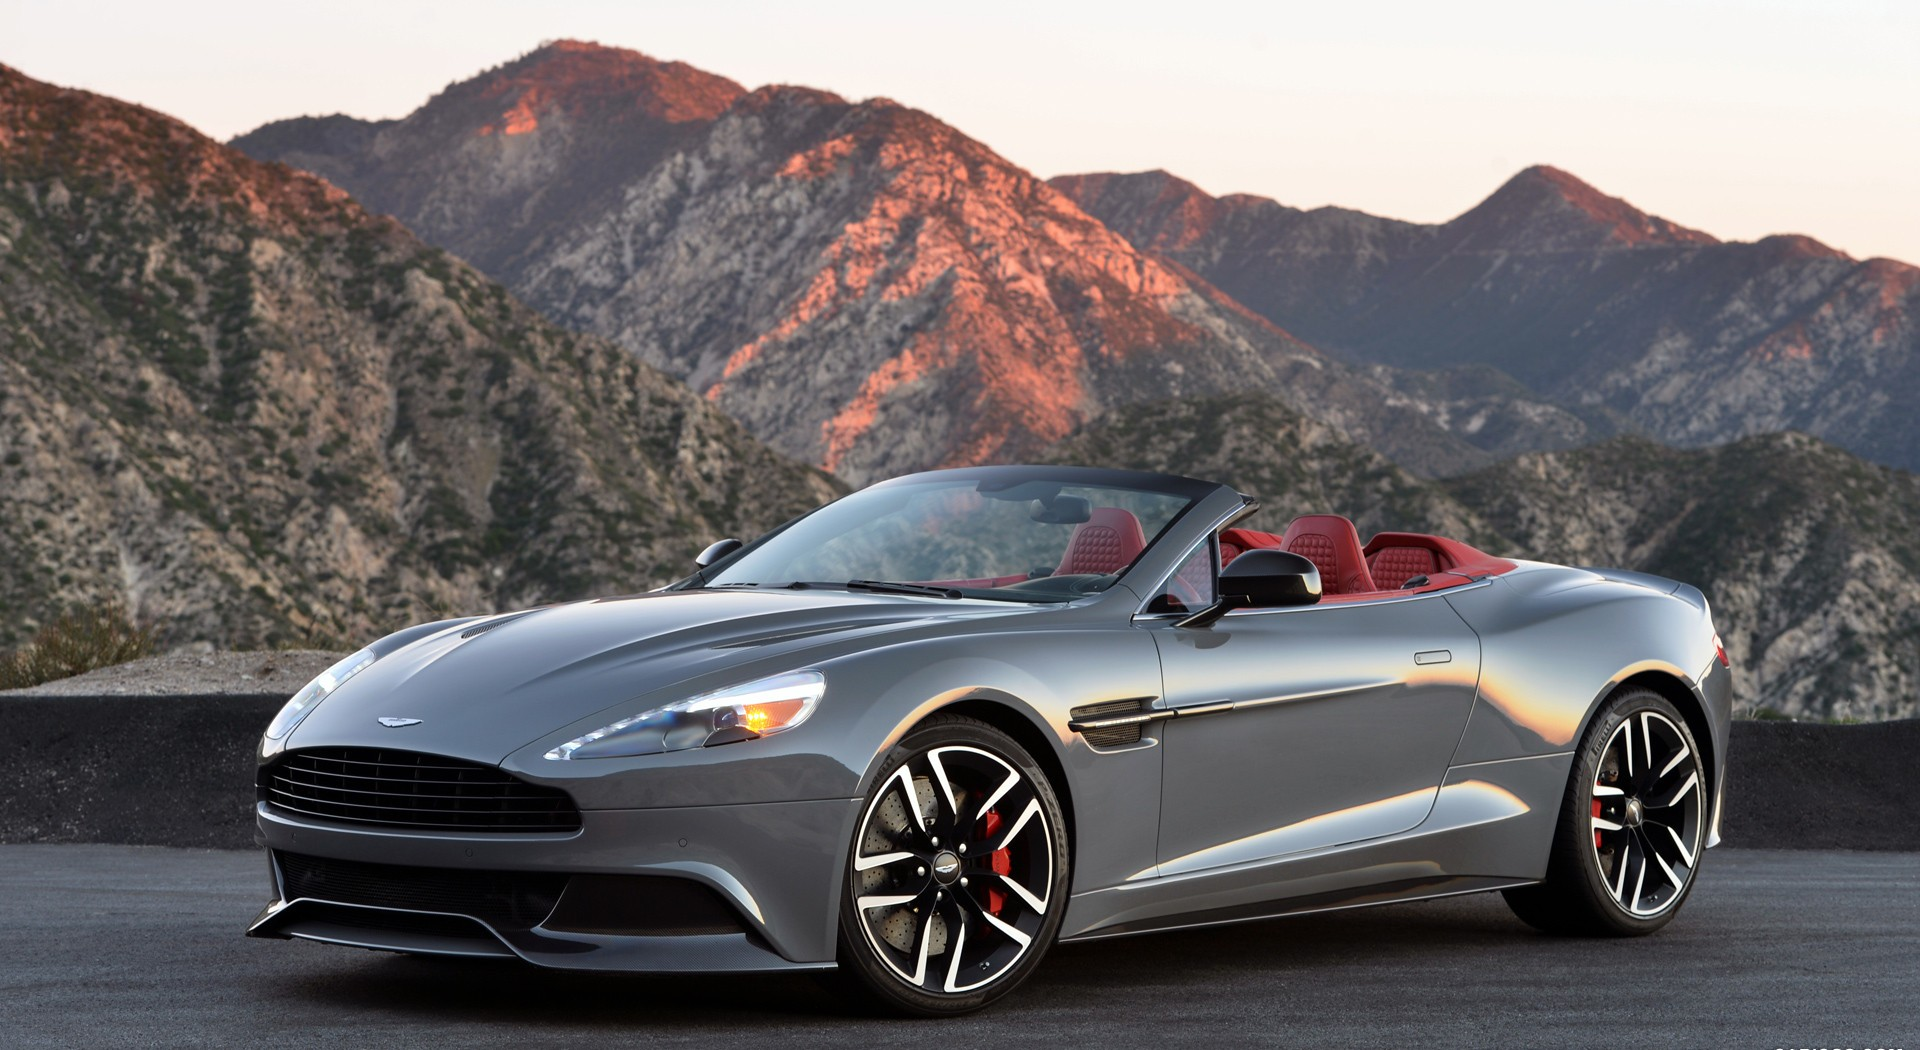 Aston Martin Vanquish Wallpapers Archives - Page 3 of 9